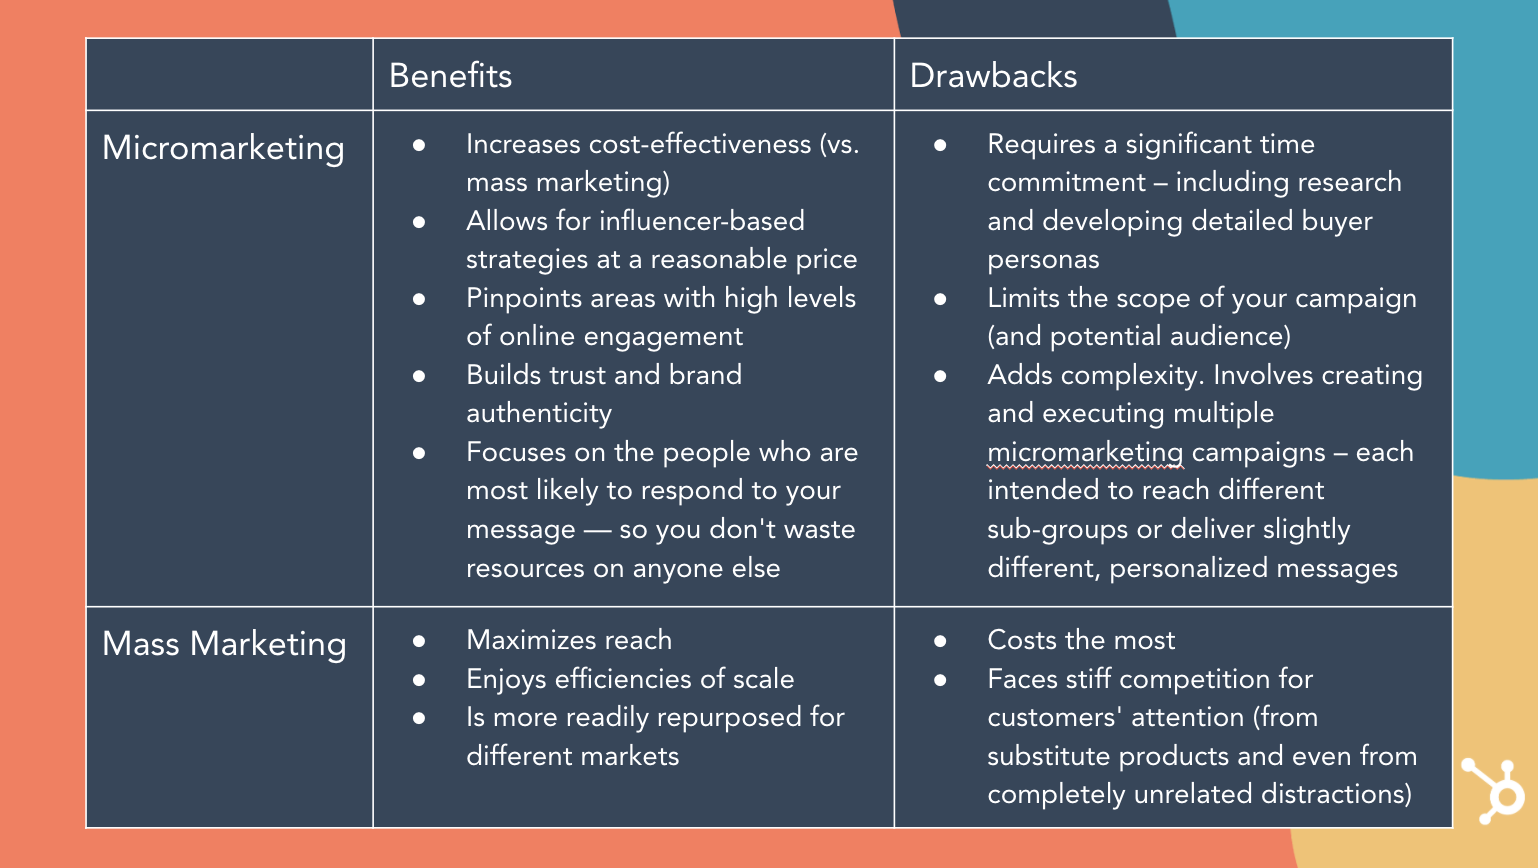 micromarketing benefits and drawbacks